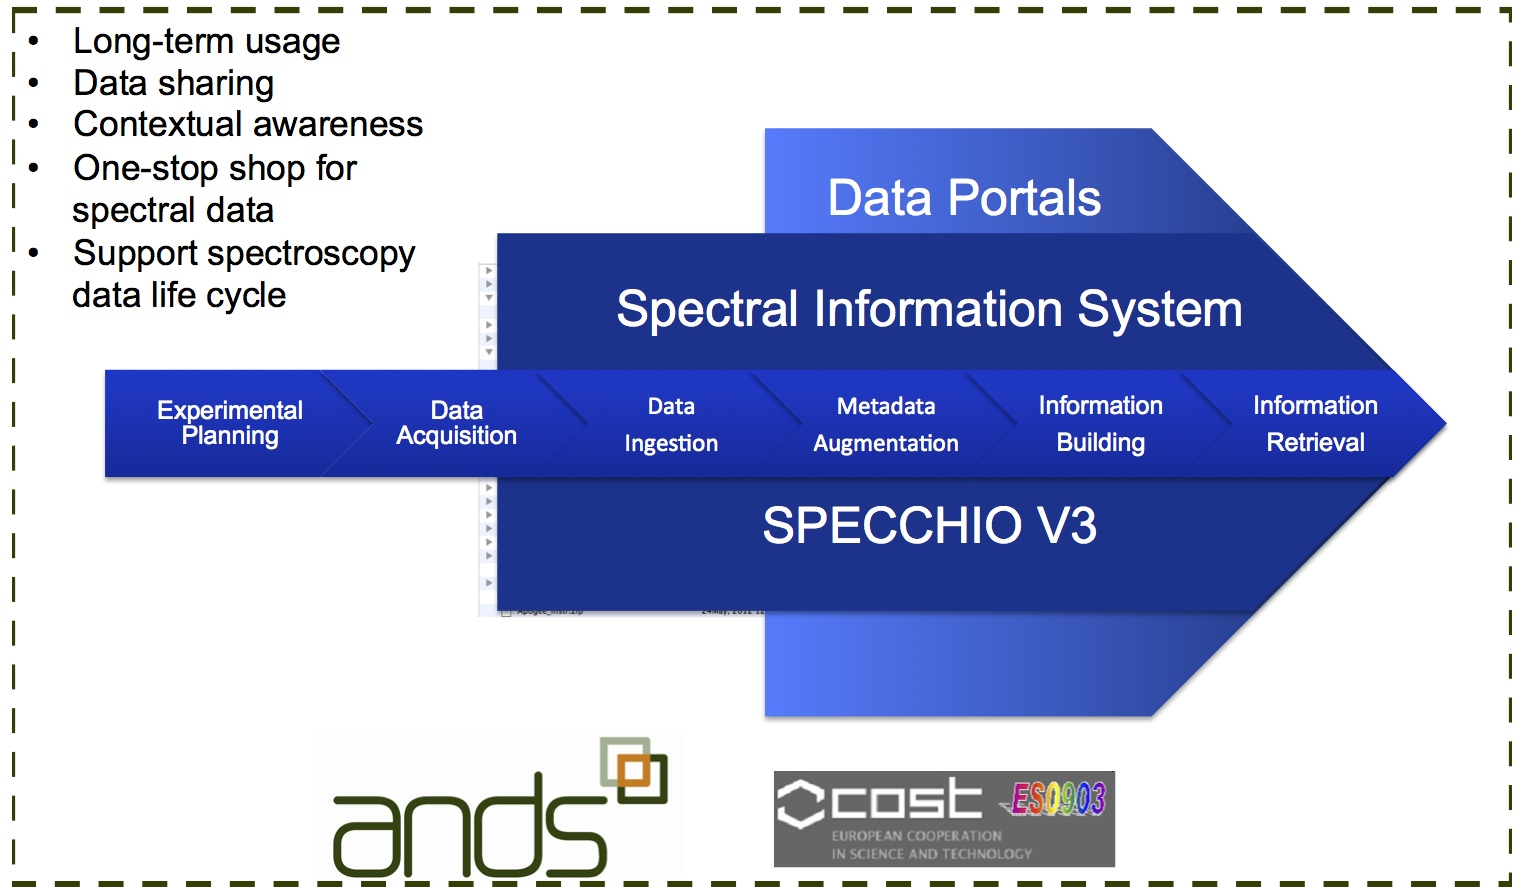 Spectroscopy Data Life Cycle in relation to the Spectral Information System